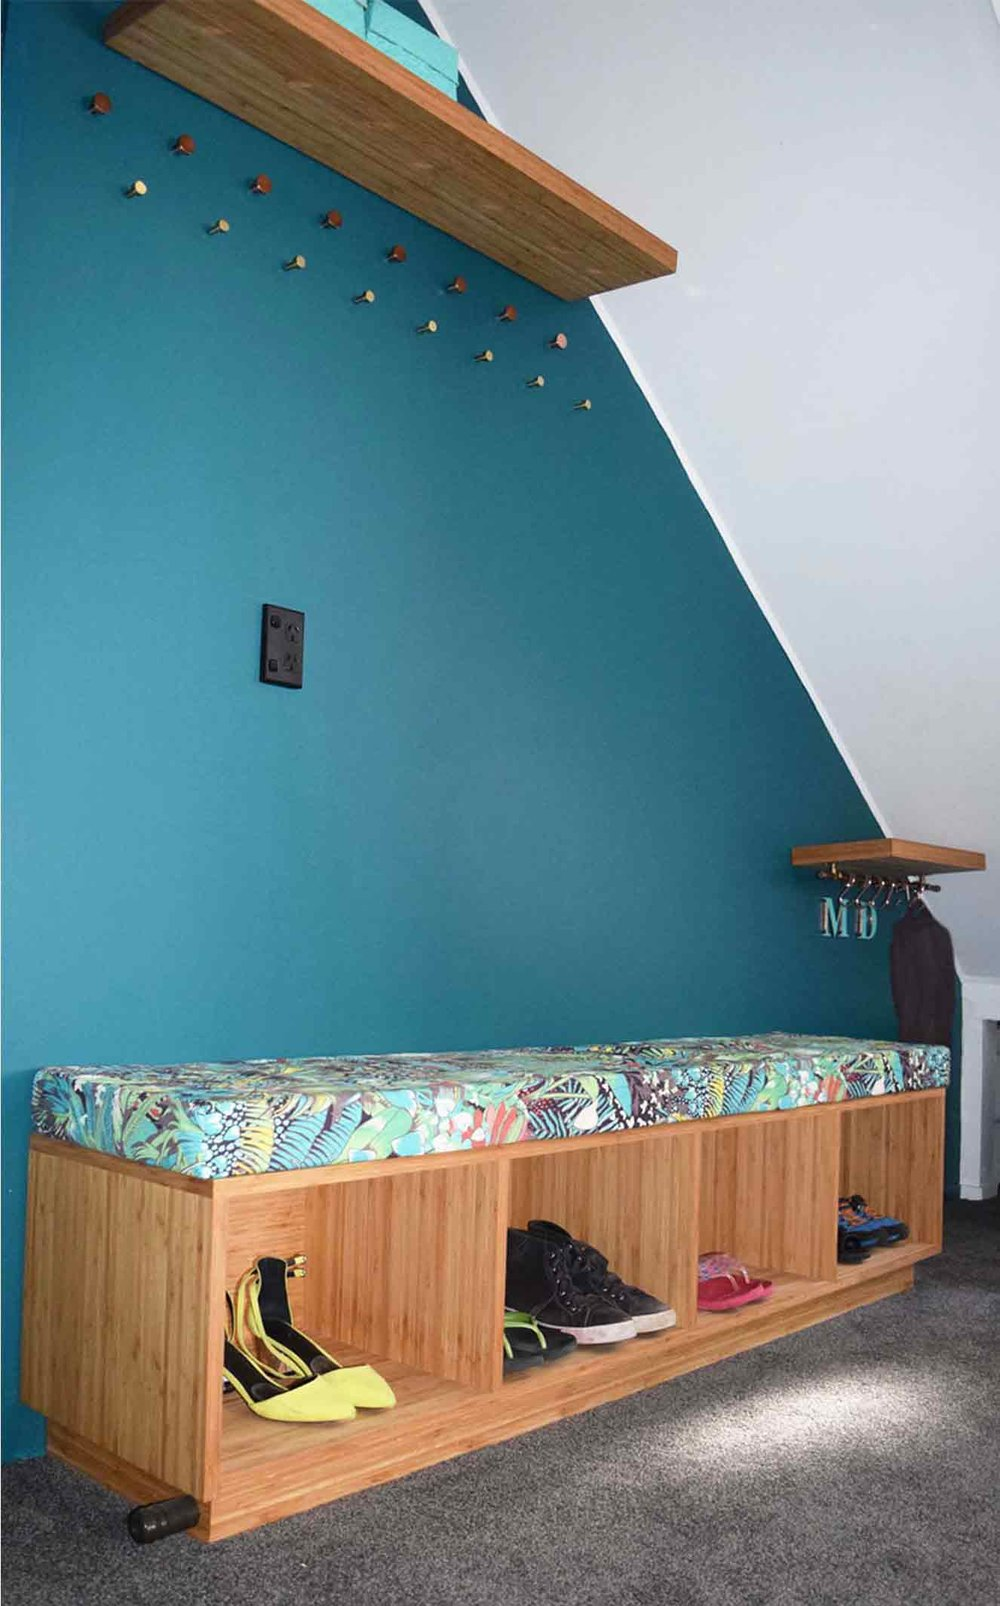 Bespoke bamboo cabinetry was made to compliment the funky retro wall and feature fabric